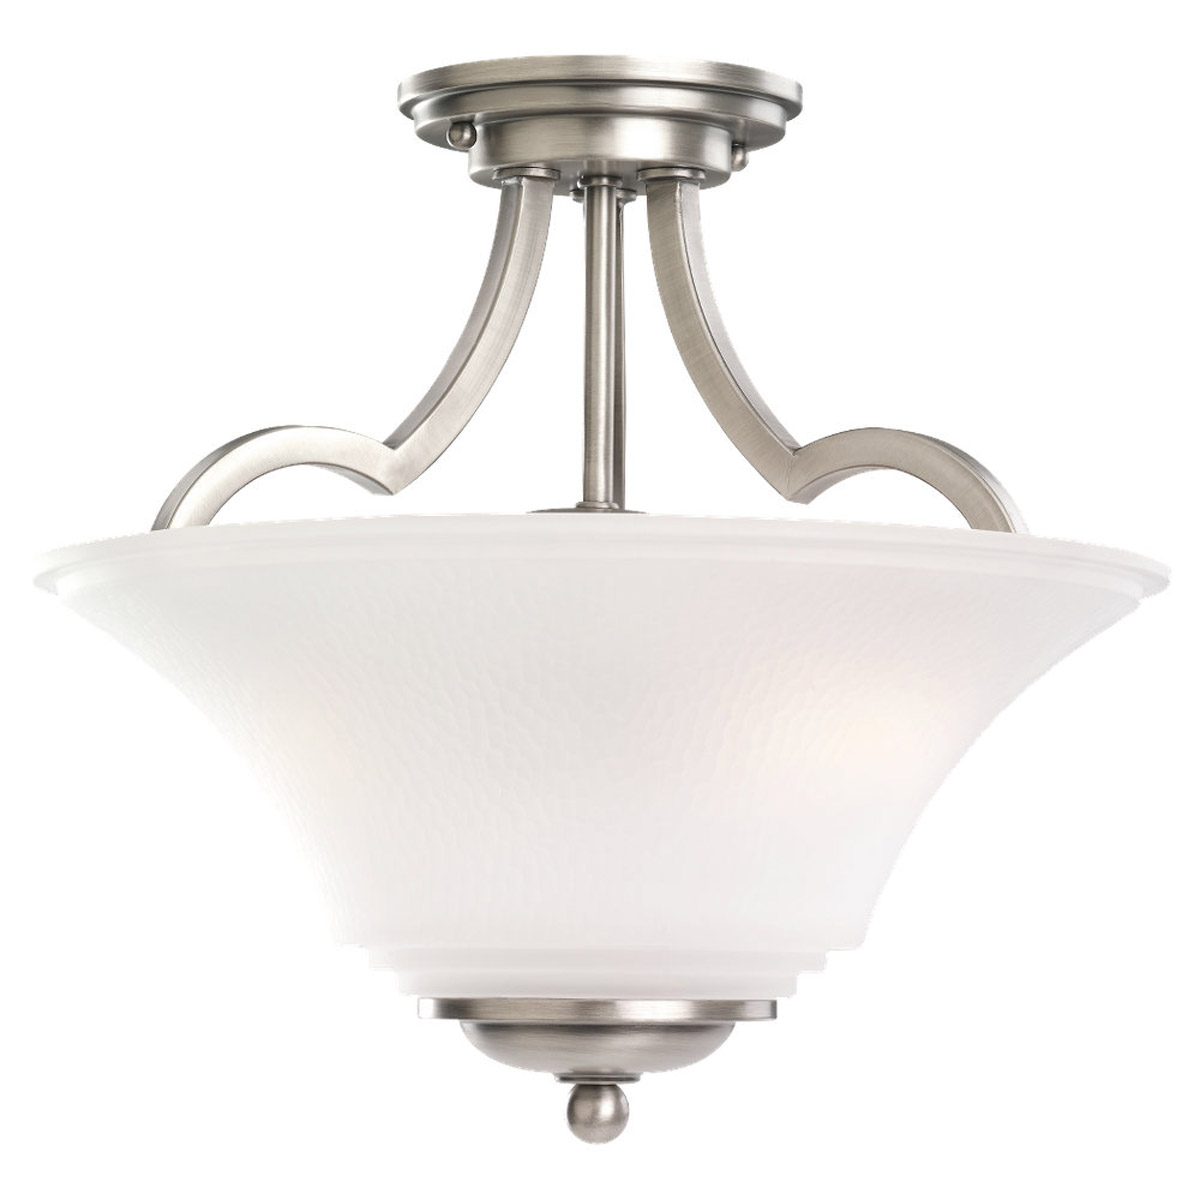 Sea Gull 77375BLE-965 Somerton 2 Light 13 inch Antique Brushed Nickel Semi-Flush Convertible Pendant Ceiling Light in Satin Etched Glass, Fluorescent photo